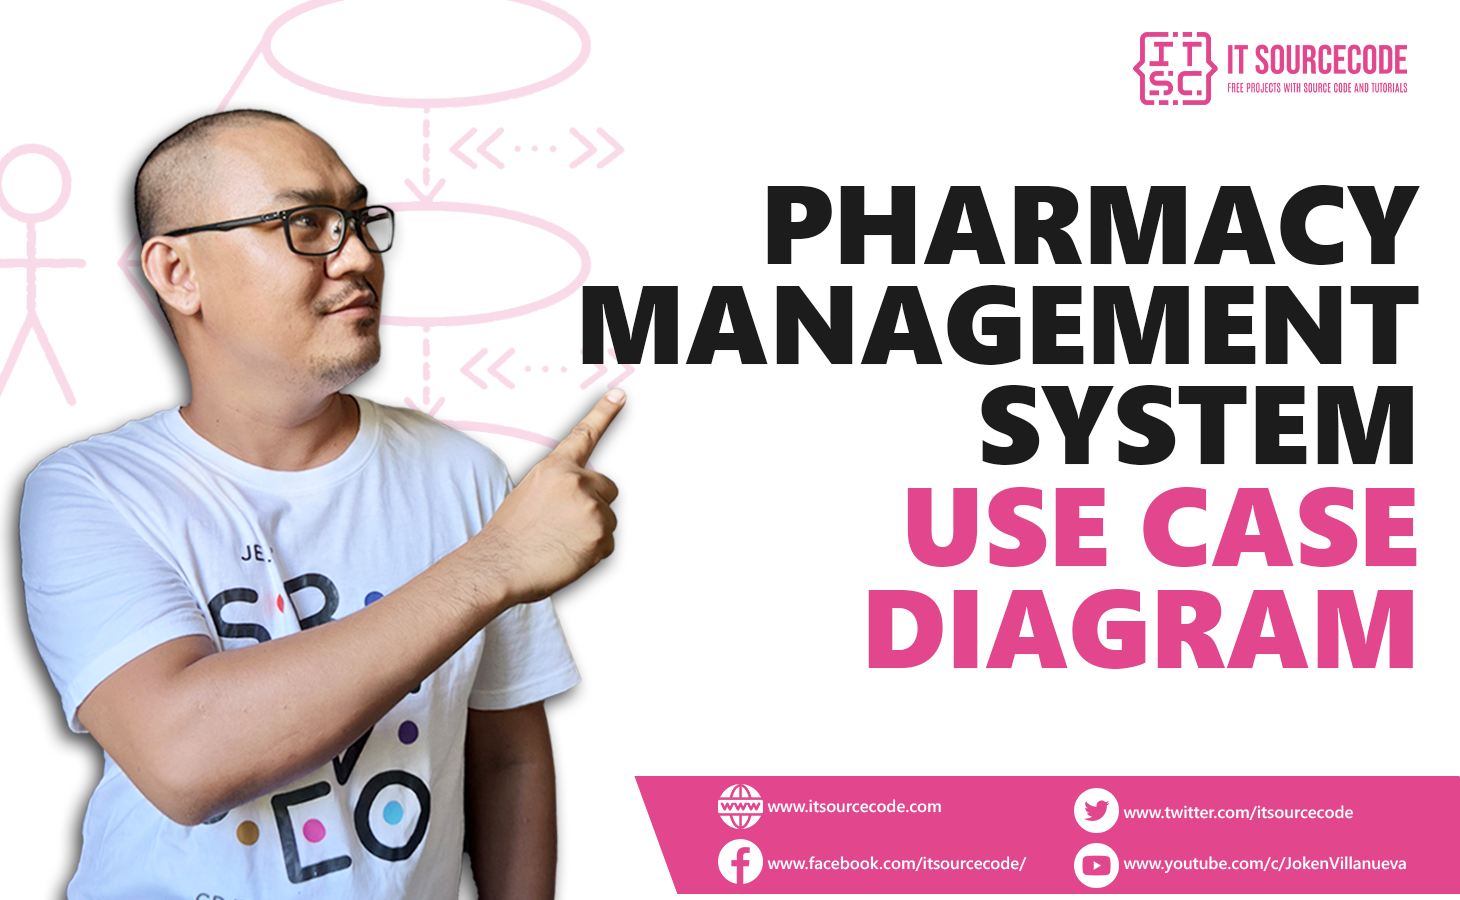 Use Case Diagram for Pharmacy Management System